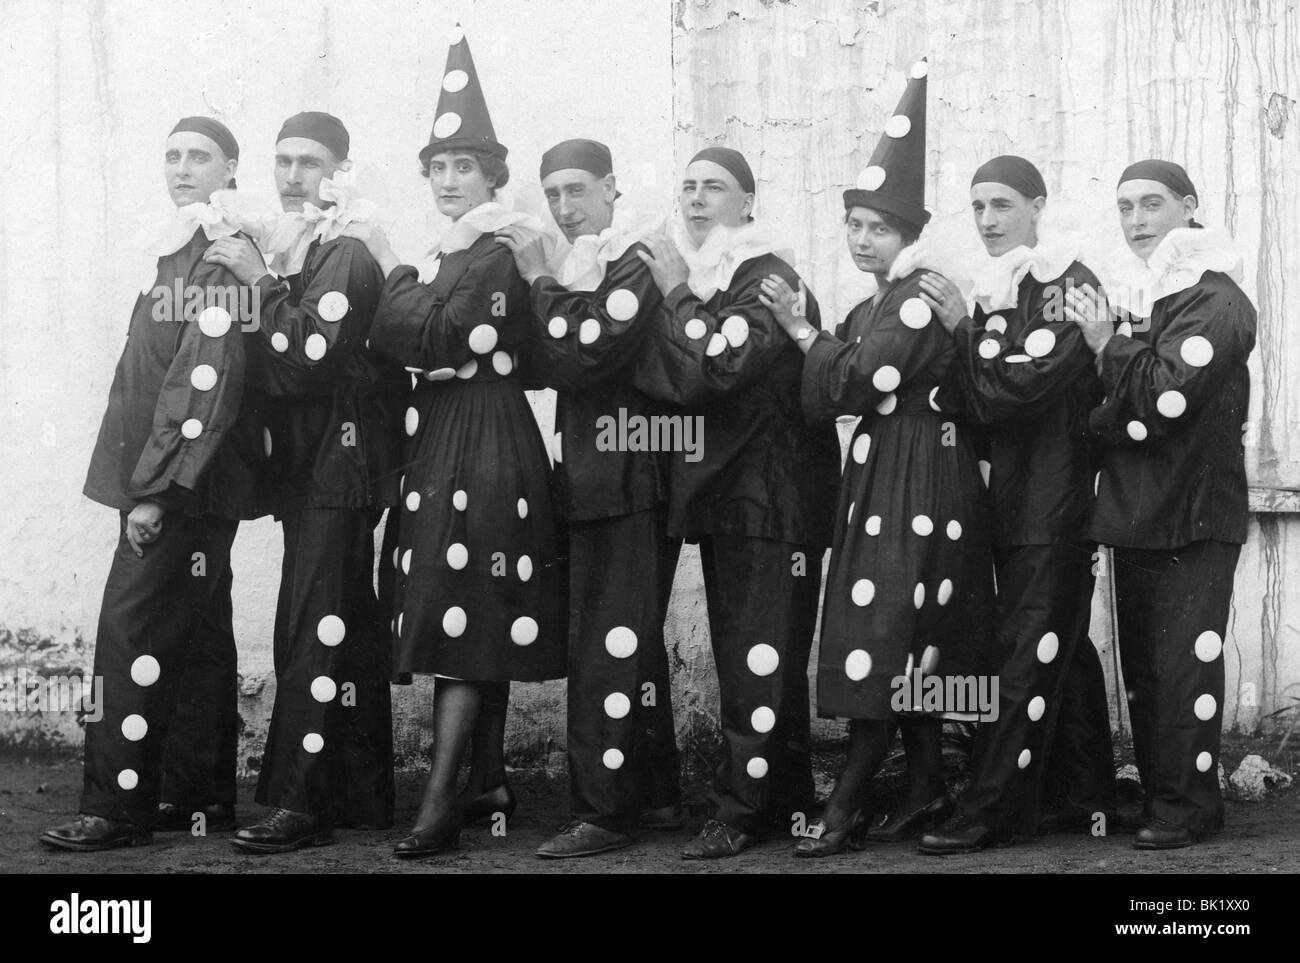 PIERROT TROUP about 1925 - Stock Image